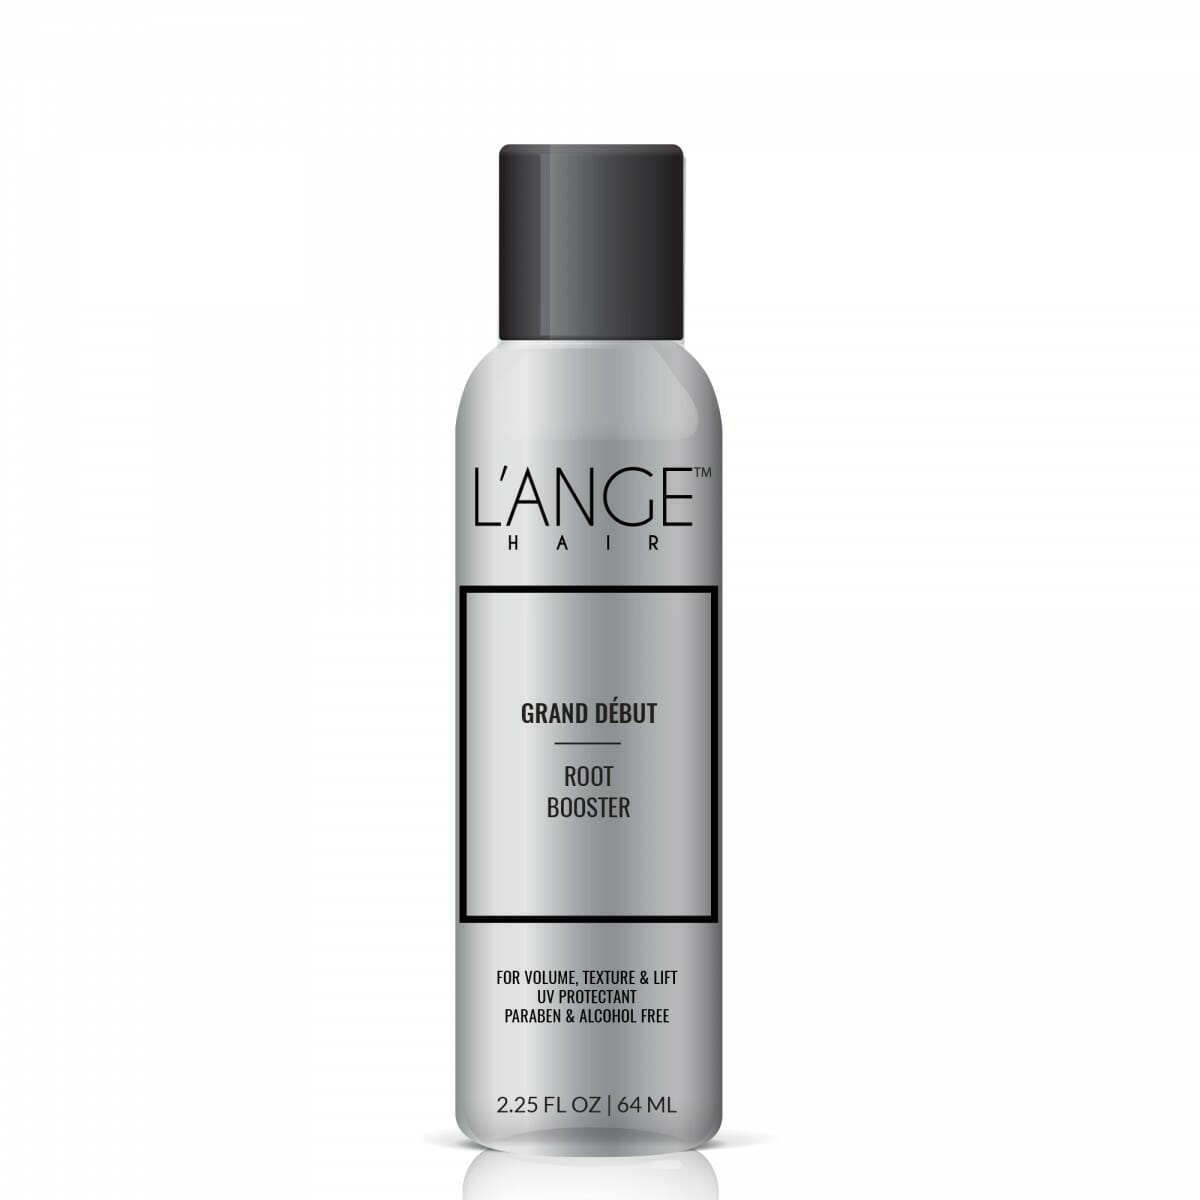 L'ange root booster